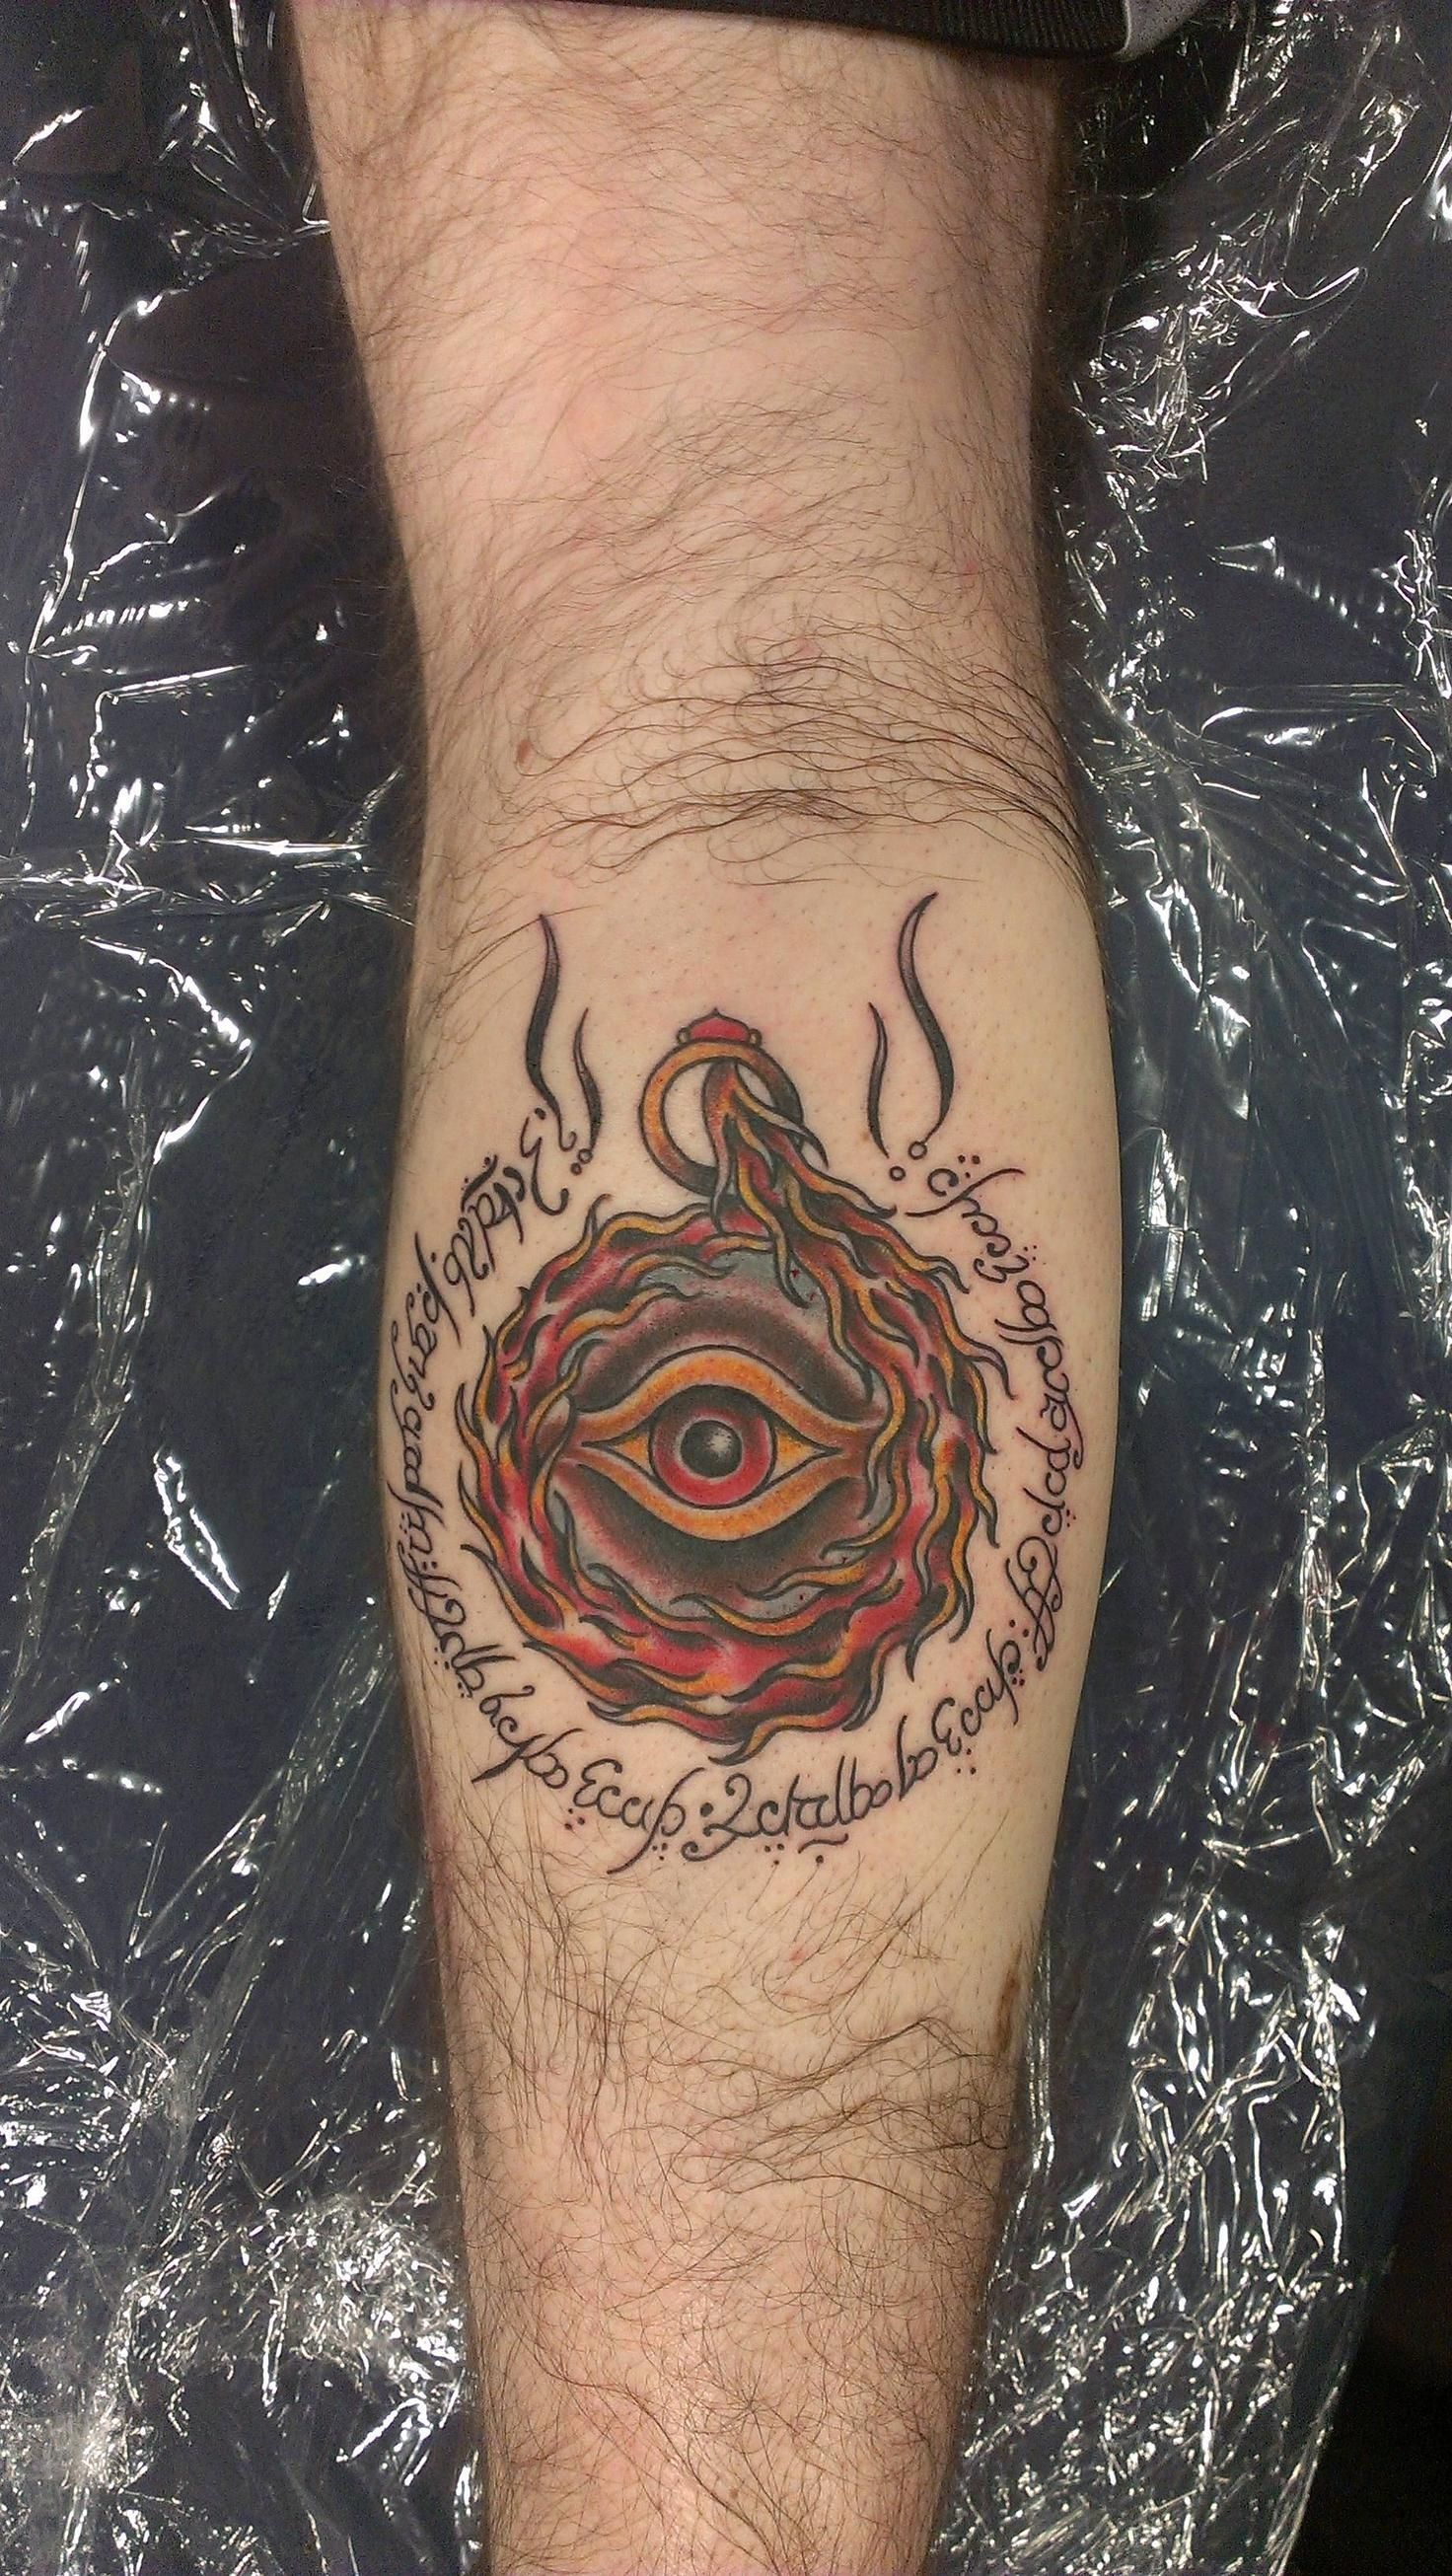 30 Eye Of Sauron Tattoo Designs For Men – Lord Of The Rings Ideas